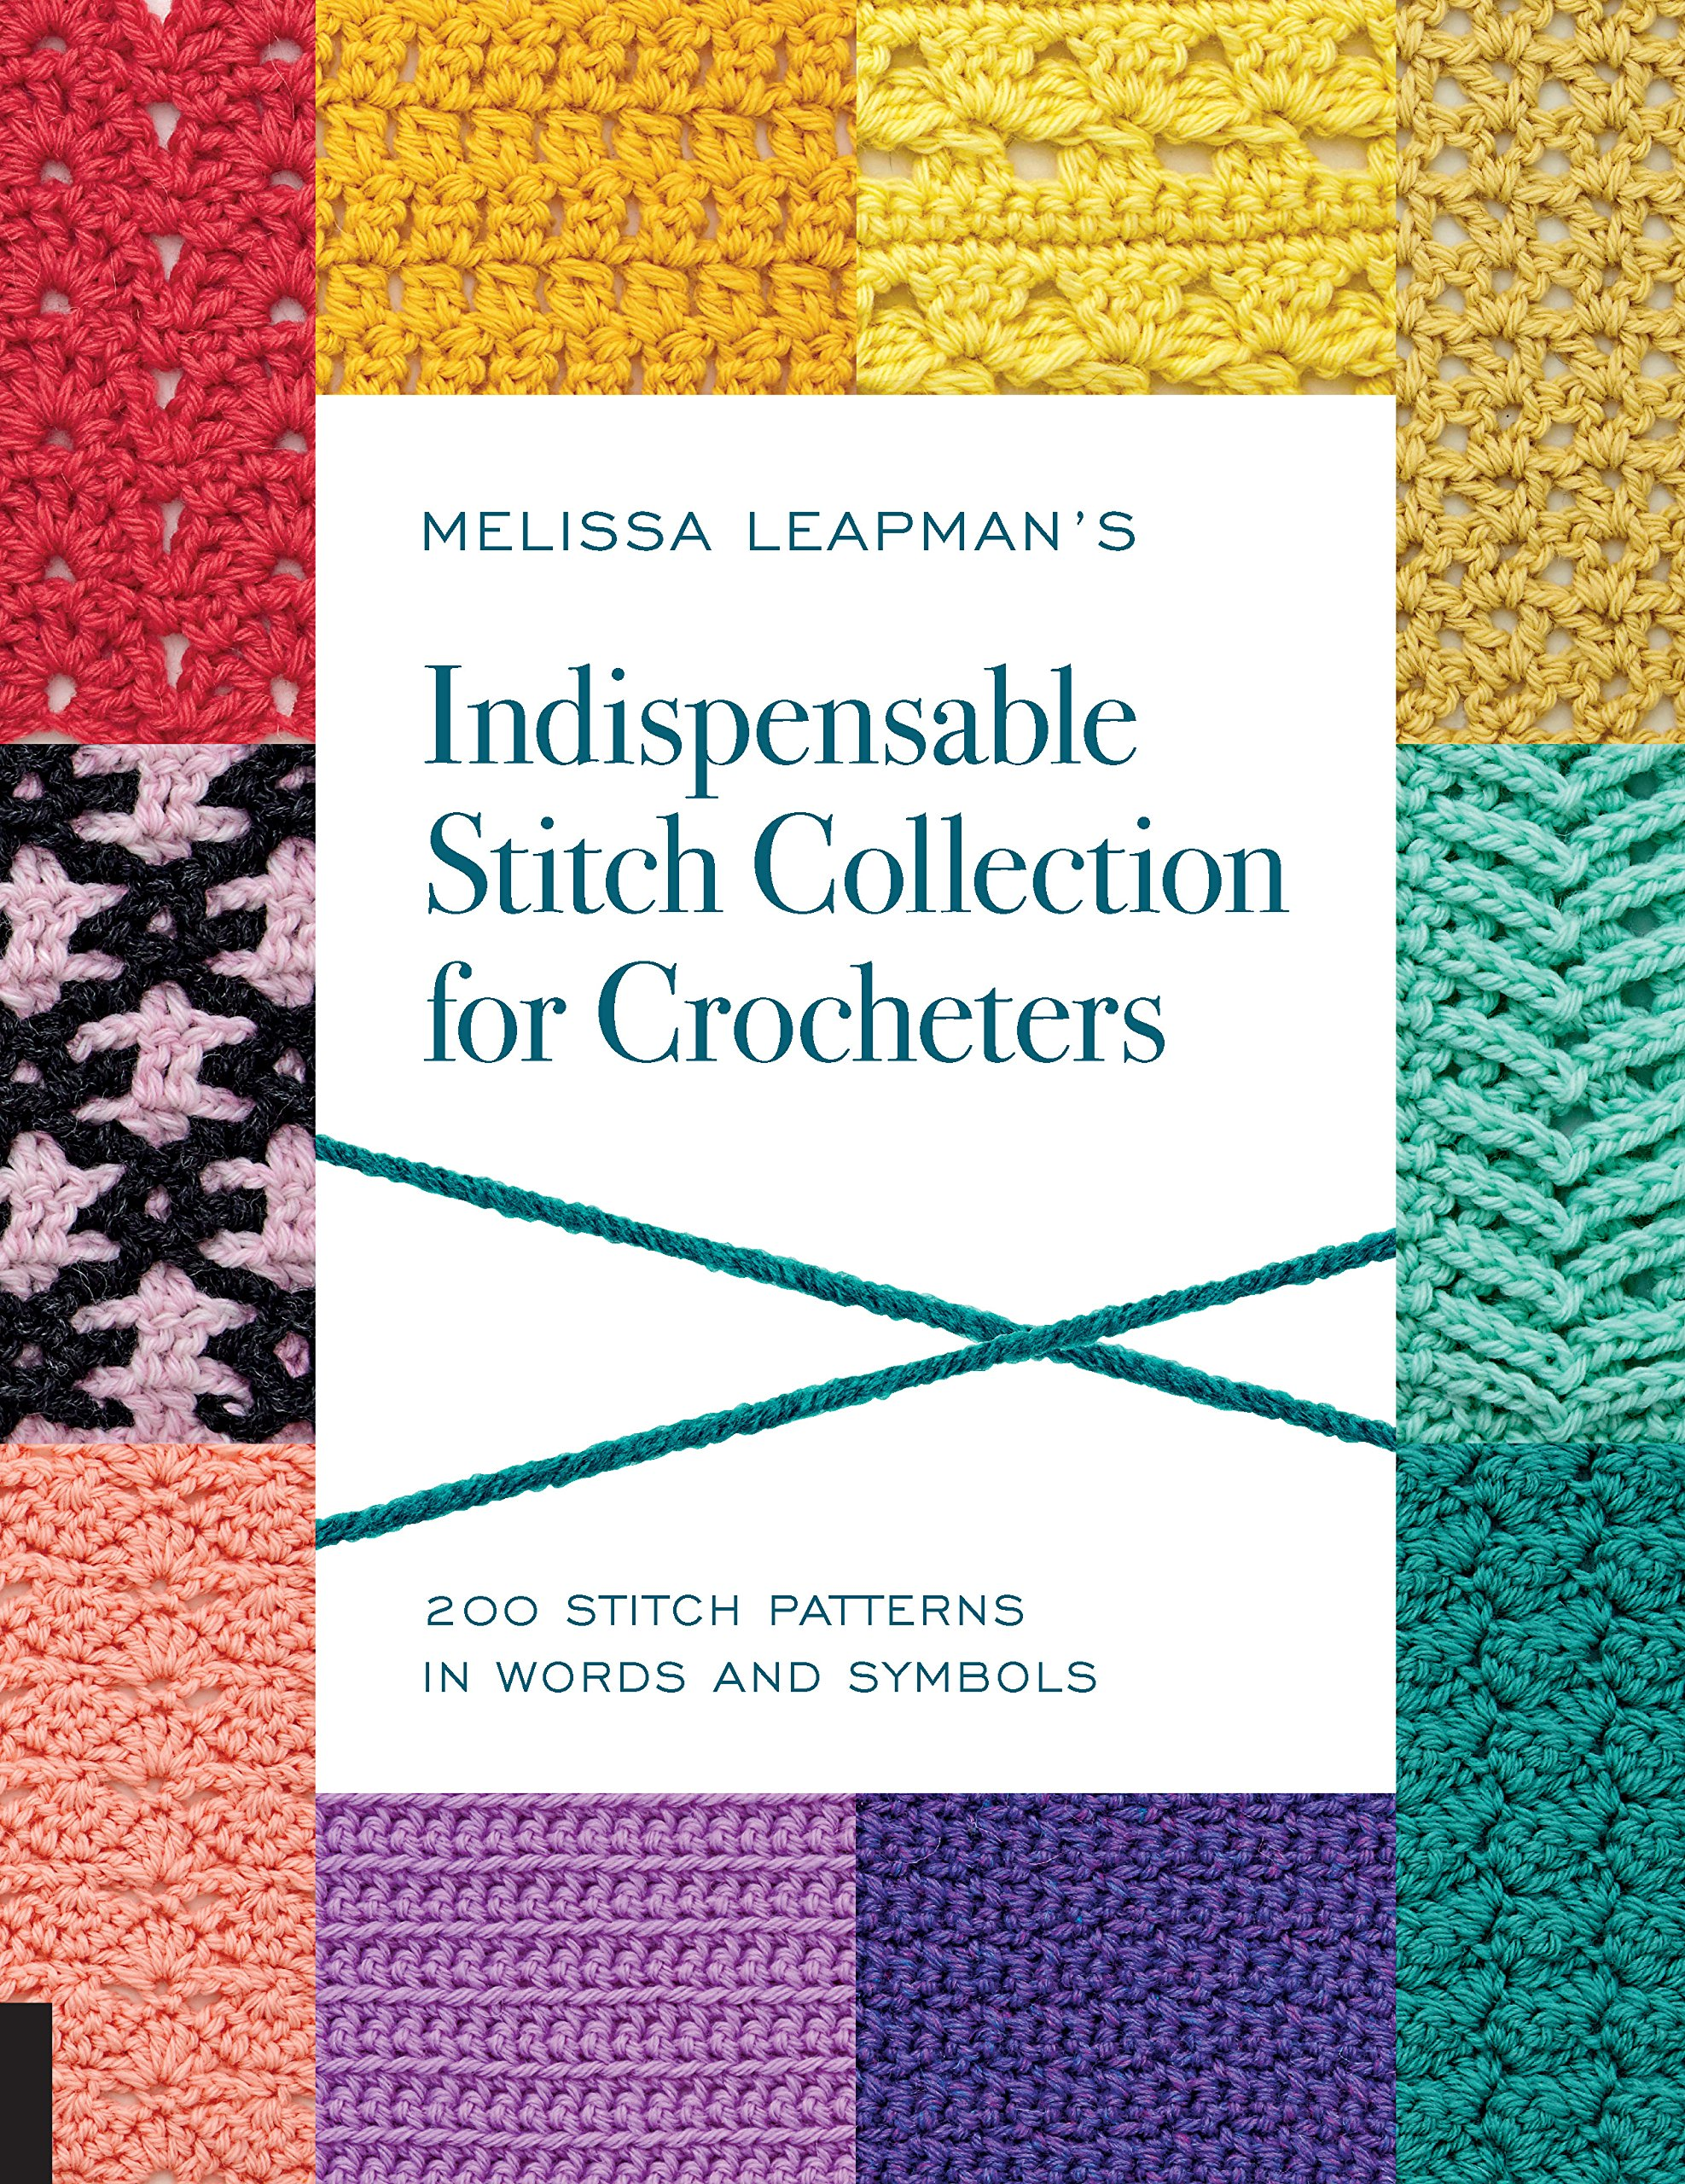 Melissa Leapmans Indispensable Stitch Collection For Crocheters Diagrams Crochet Patterns Pinterest 200 In Words And Symbols Leapman 9781589239296